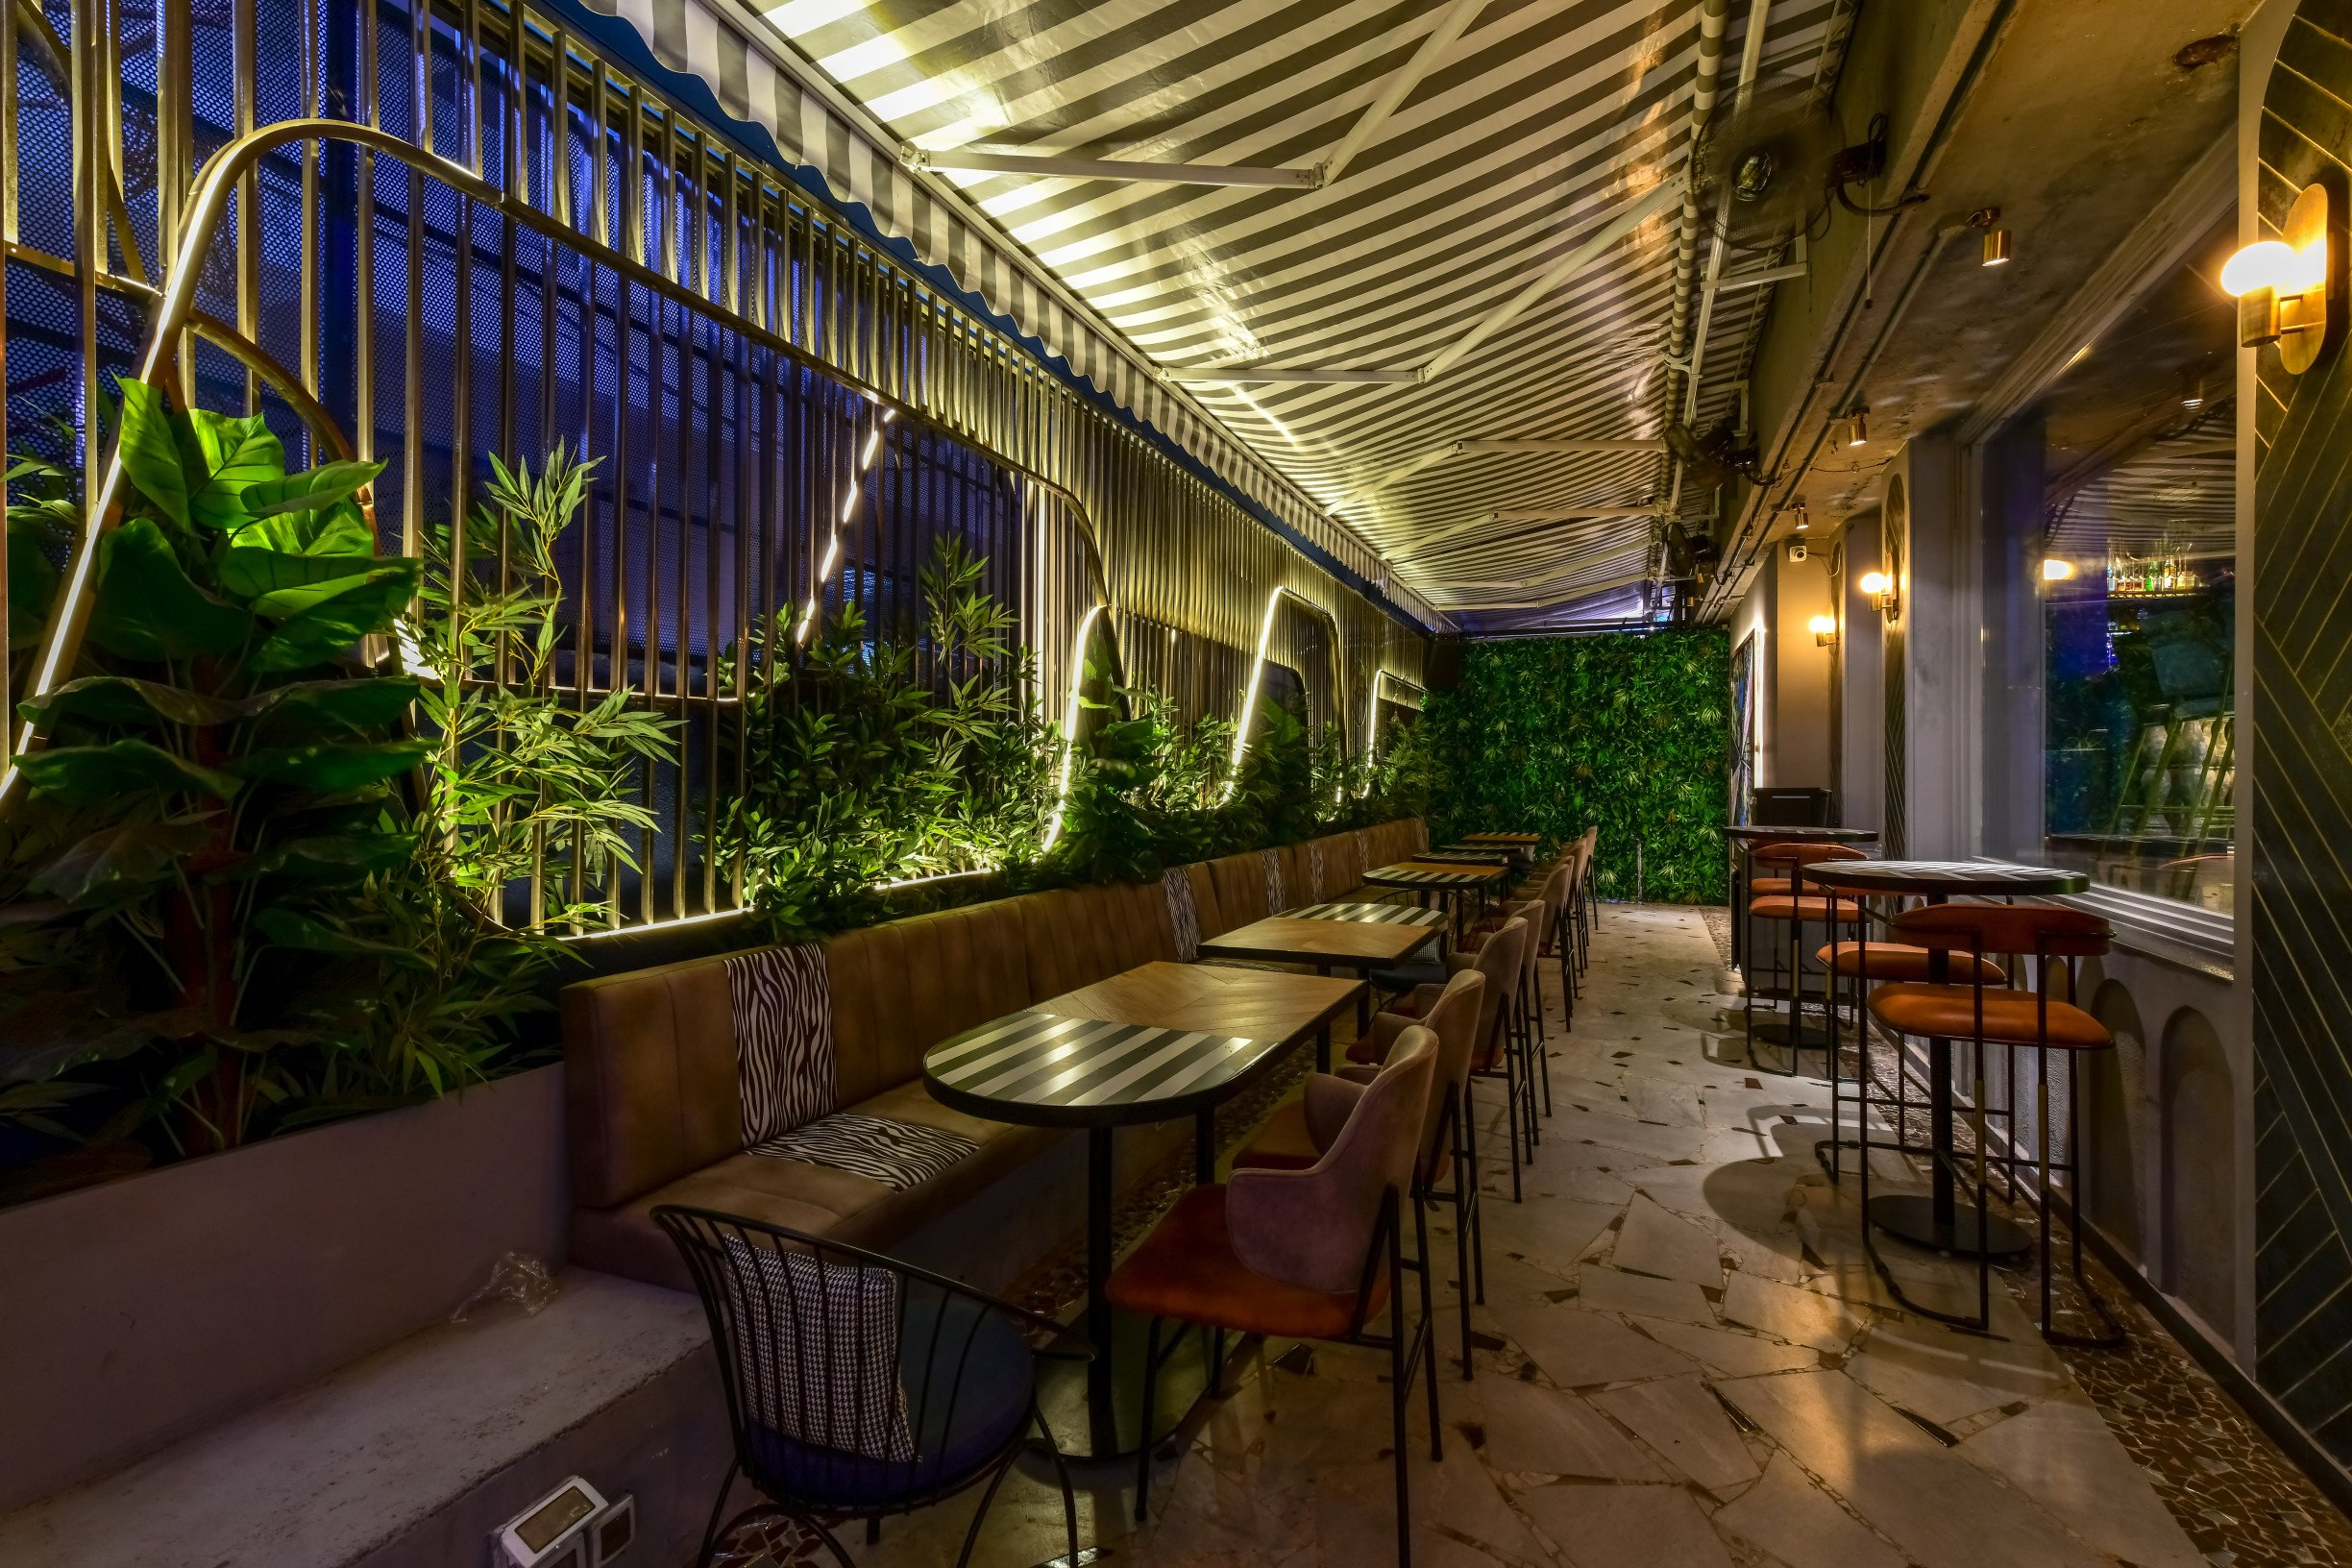 Radio Bar 2.0: Khar's popular nightlife spot is back with a redone menu and vibrant interiors